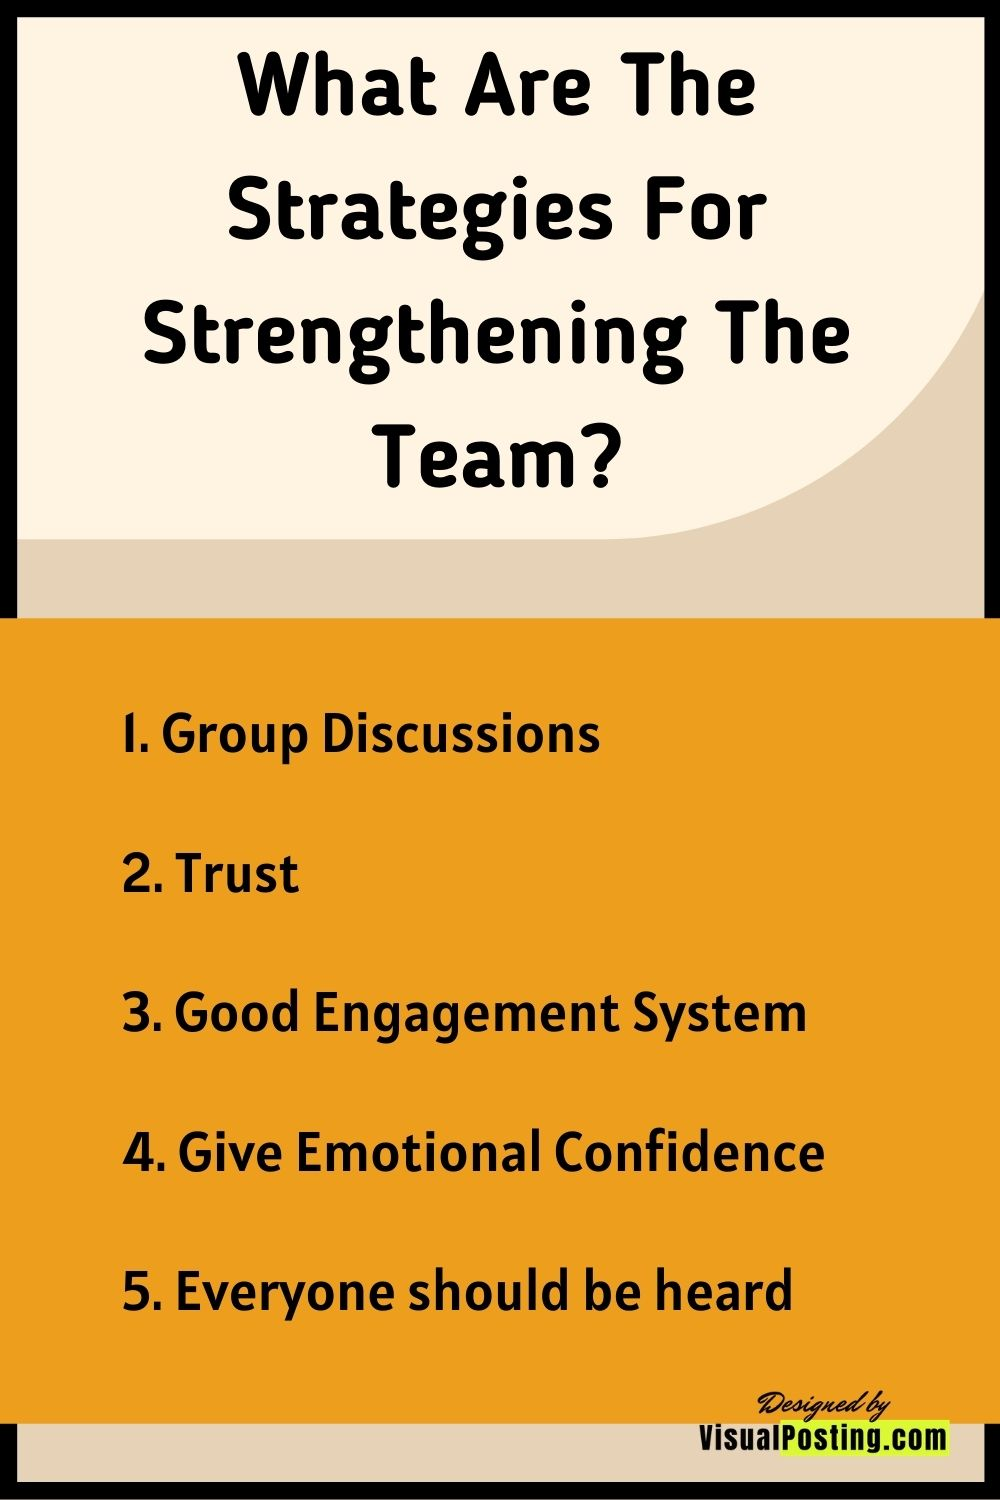 What Are The Strategies For Strengthening The Team?.jpg